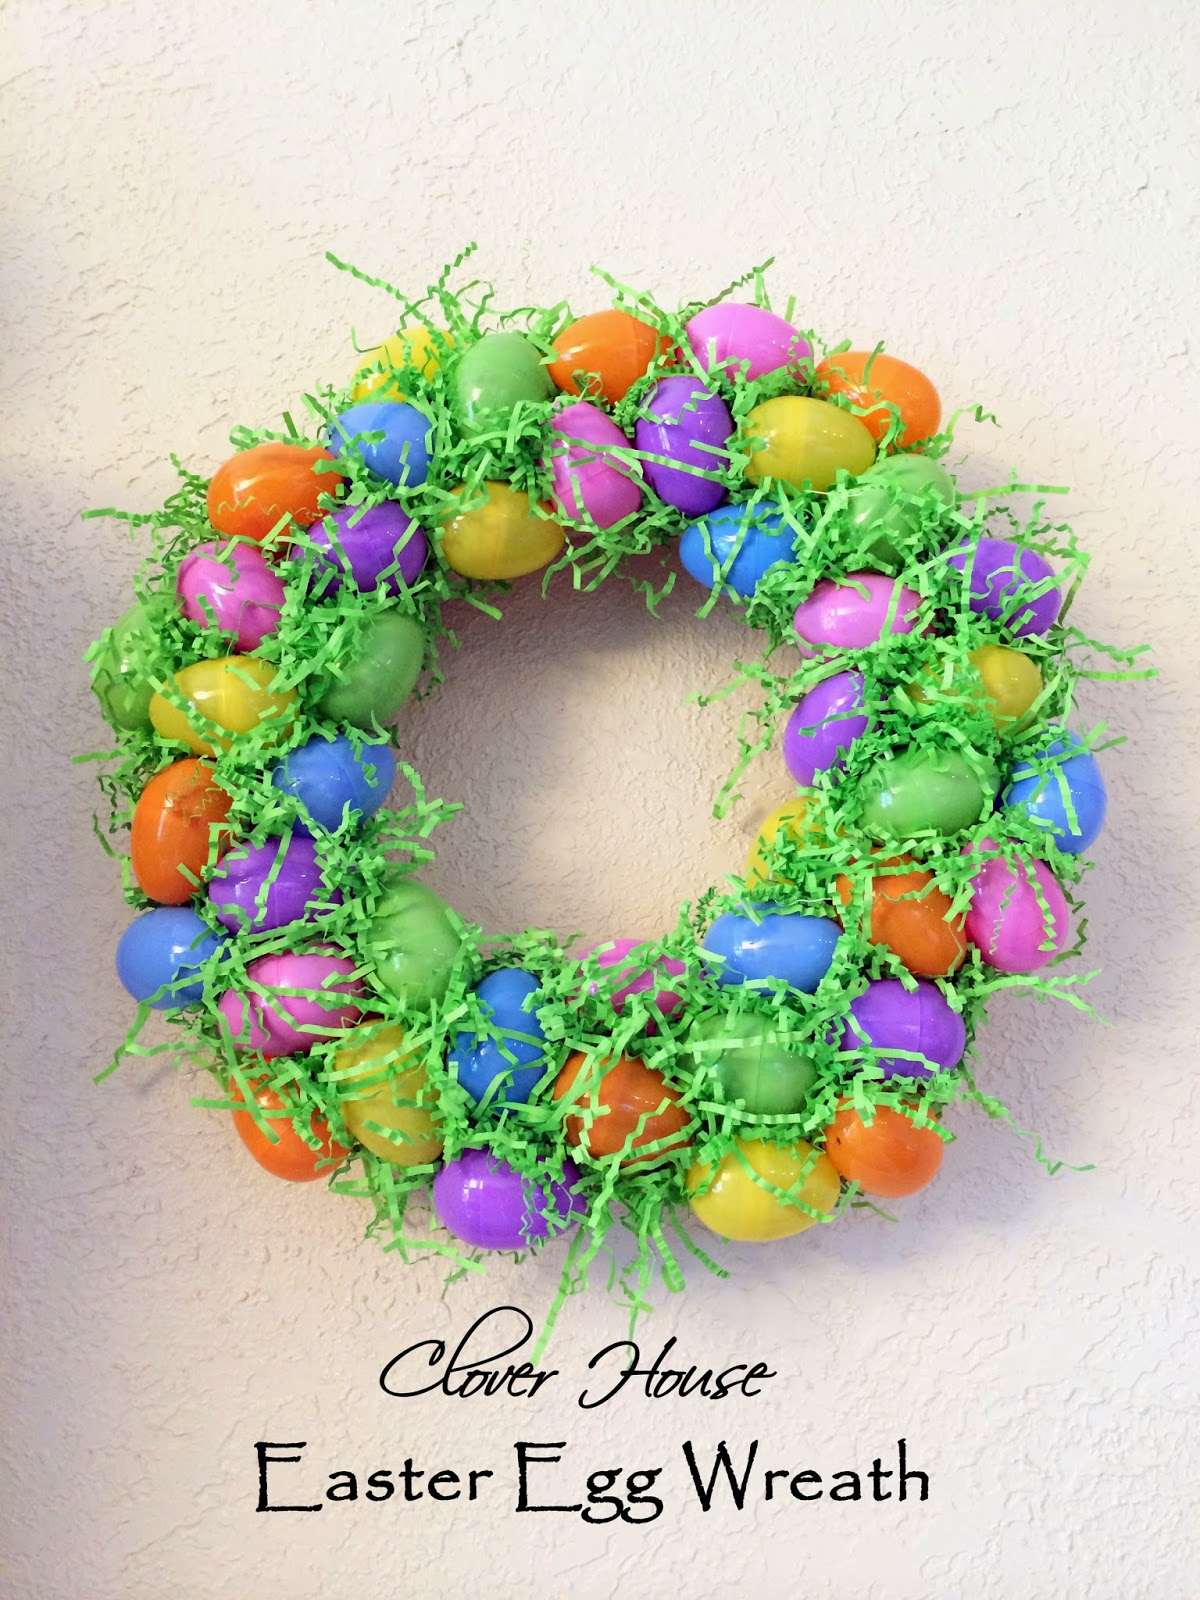 Clover House: Easter Egg Wreath Revisited